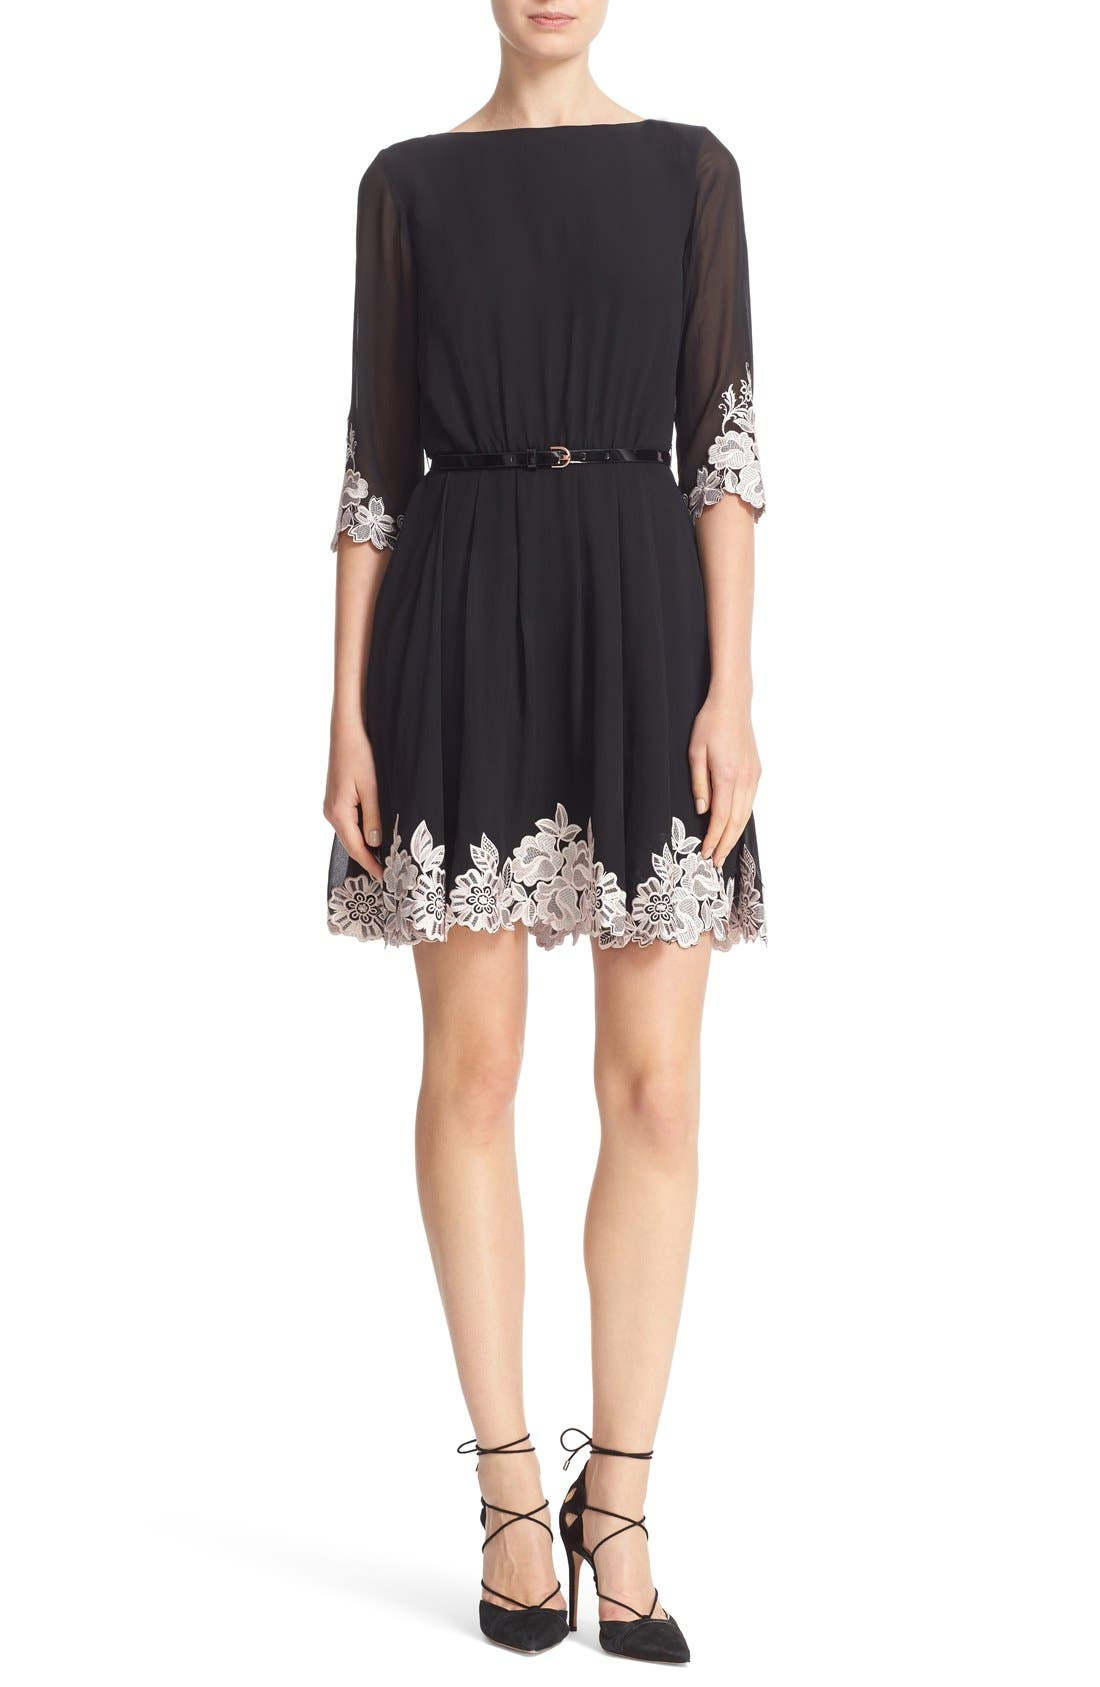 Alternate Image 1 Selected - Ted Baker London Feay Belted Lace Embellished Dress